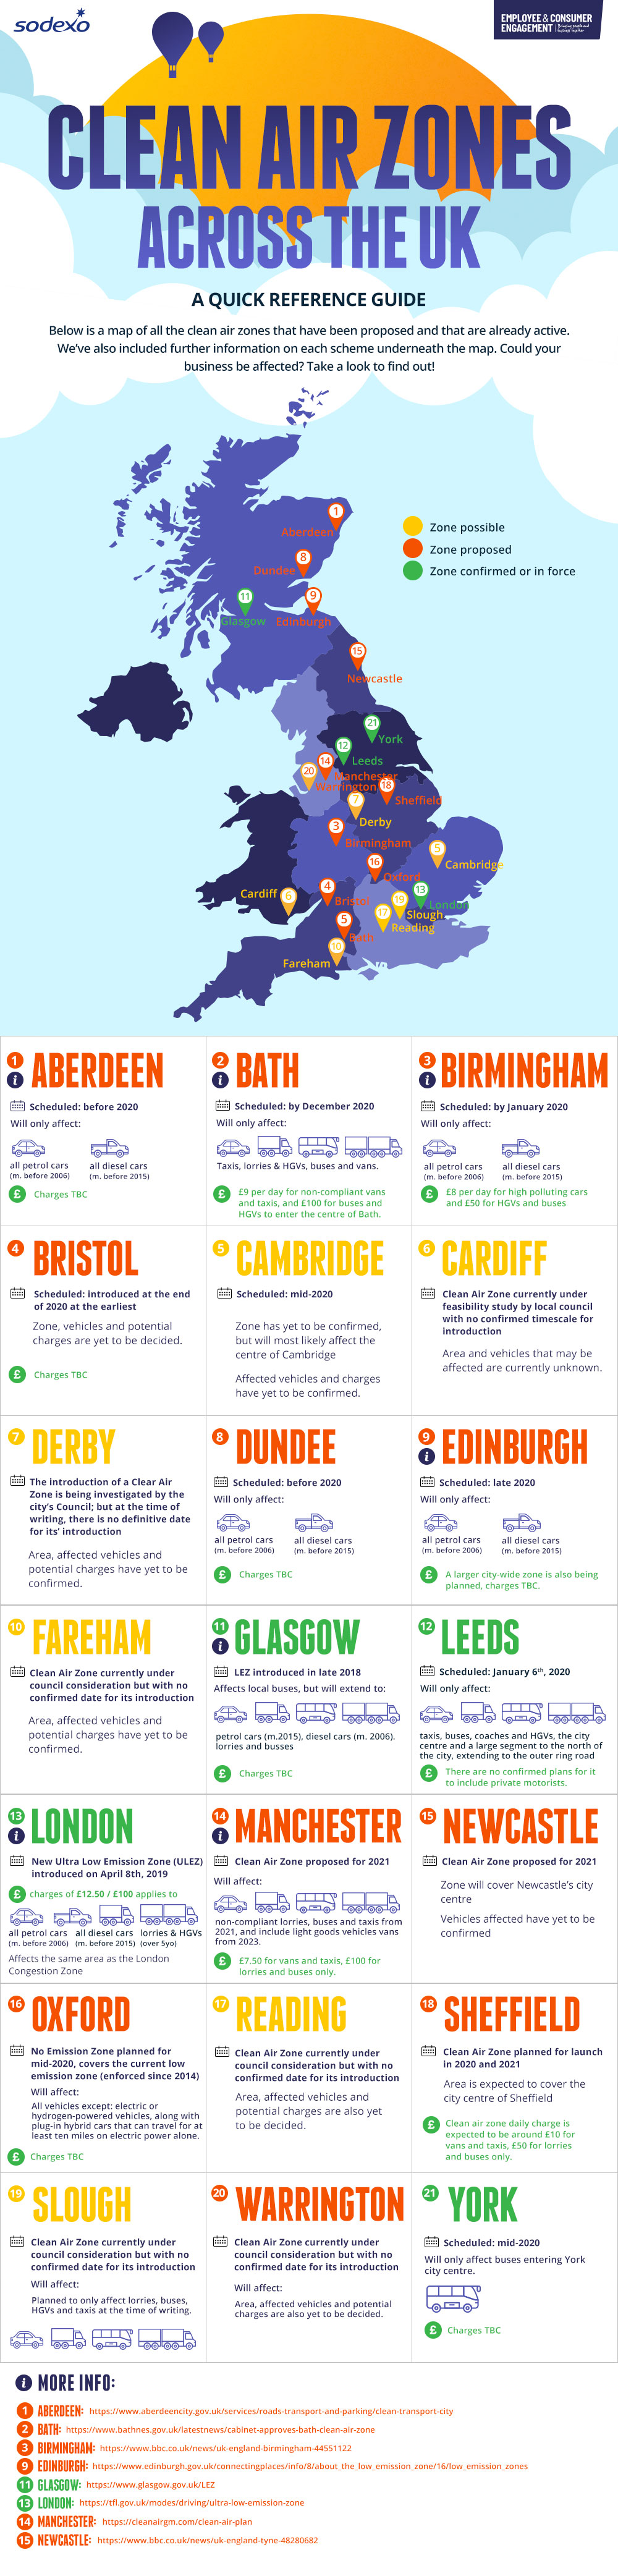 Quick Reference Guide to UK Clean Air Zones Sodexo Glow